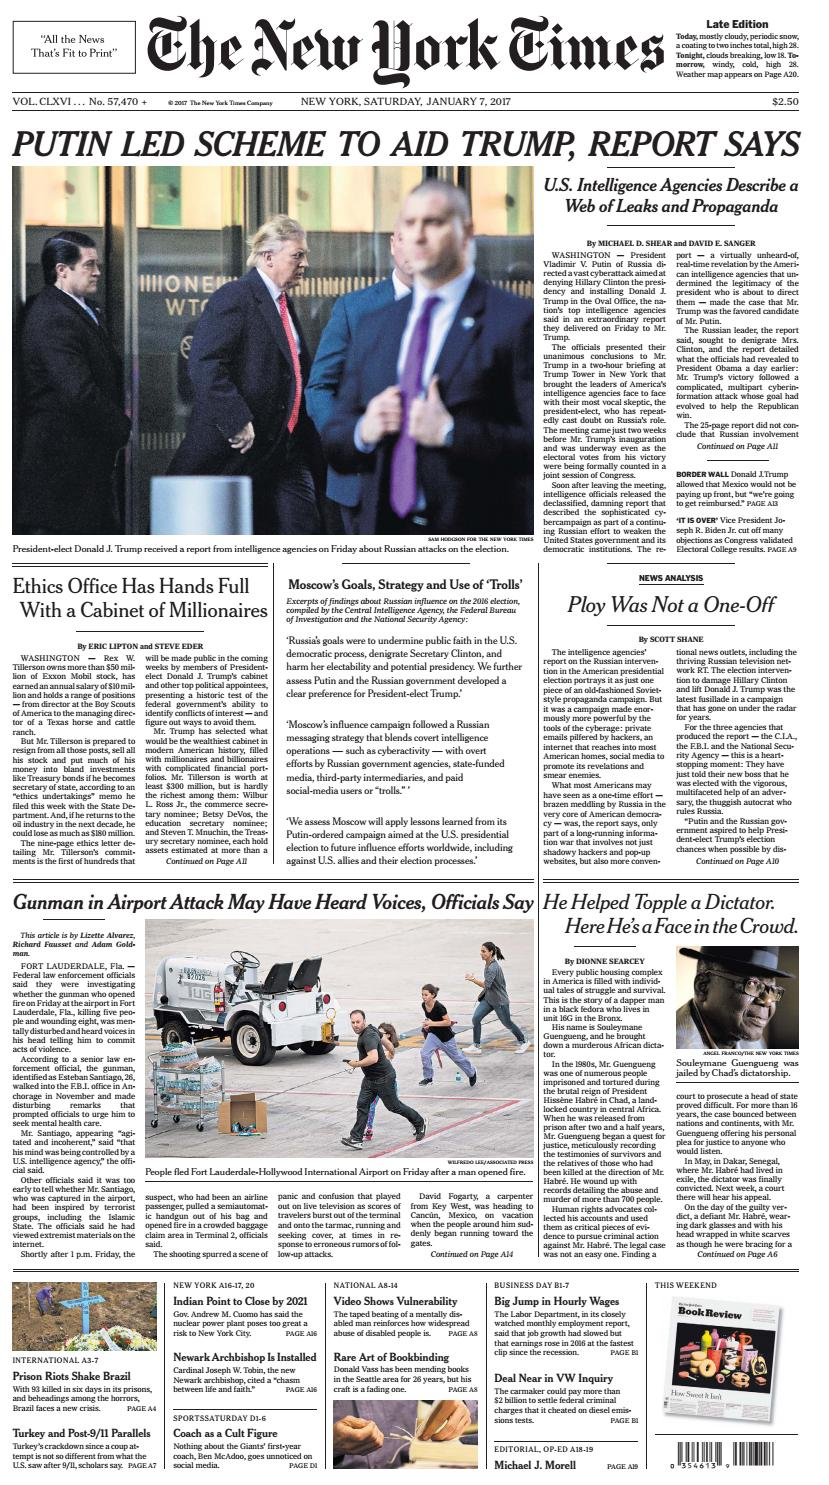 The new york times january 07 2017 by dfvdvfdfv - issuu